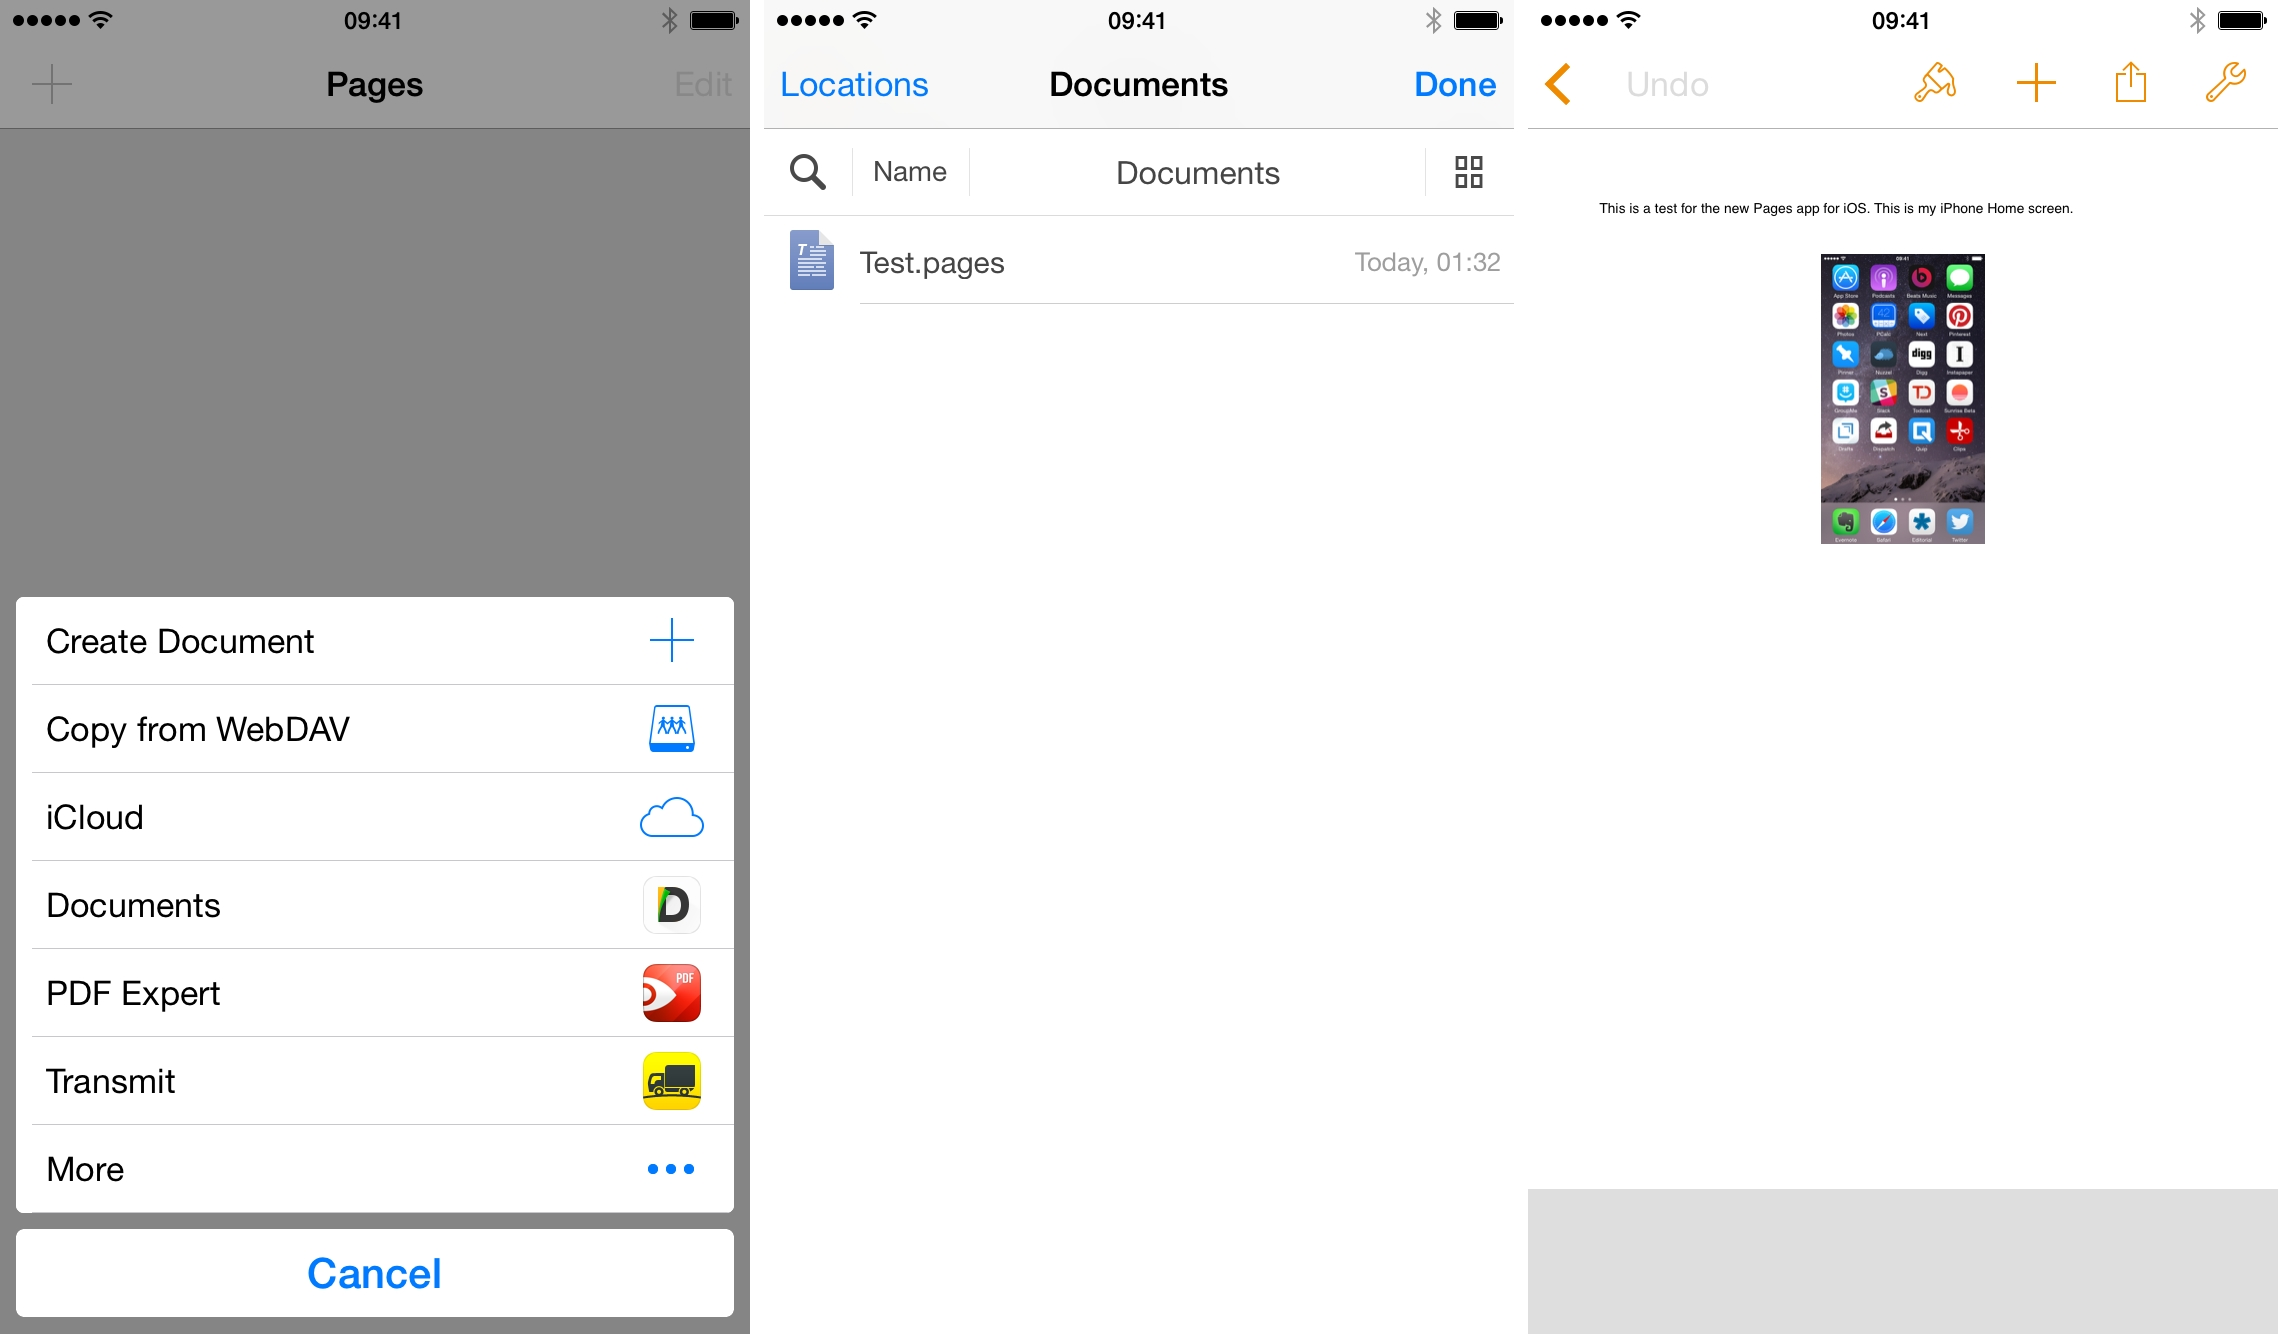 Testing storage providers in the new iWork for iOS 8.